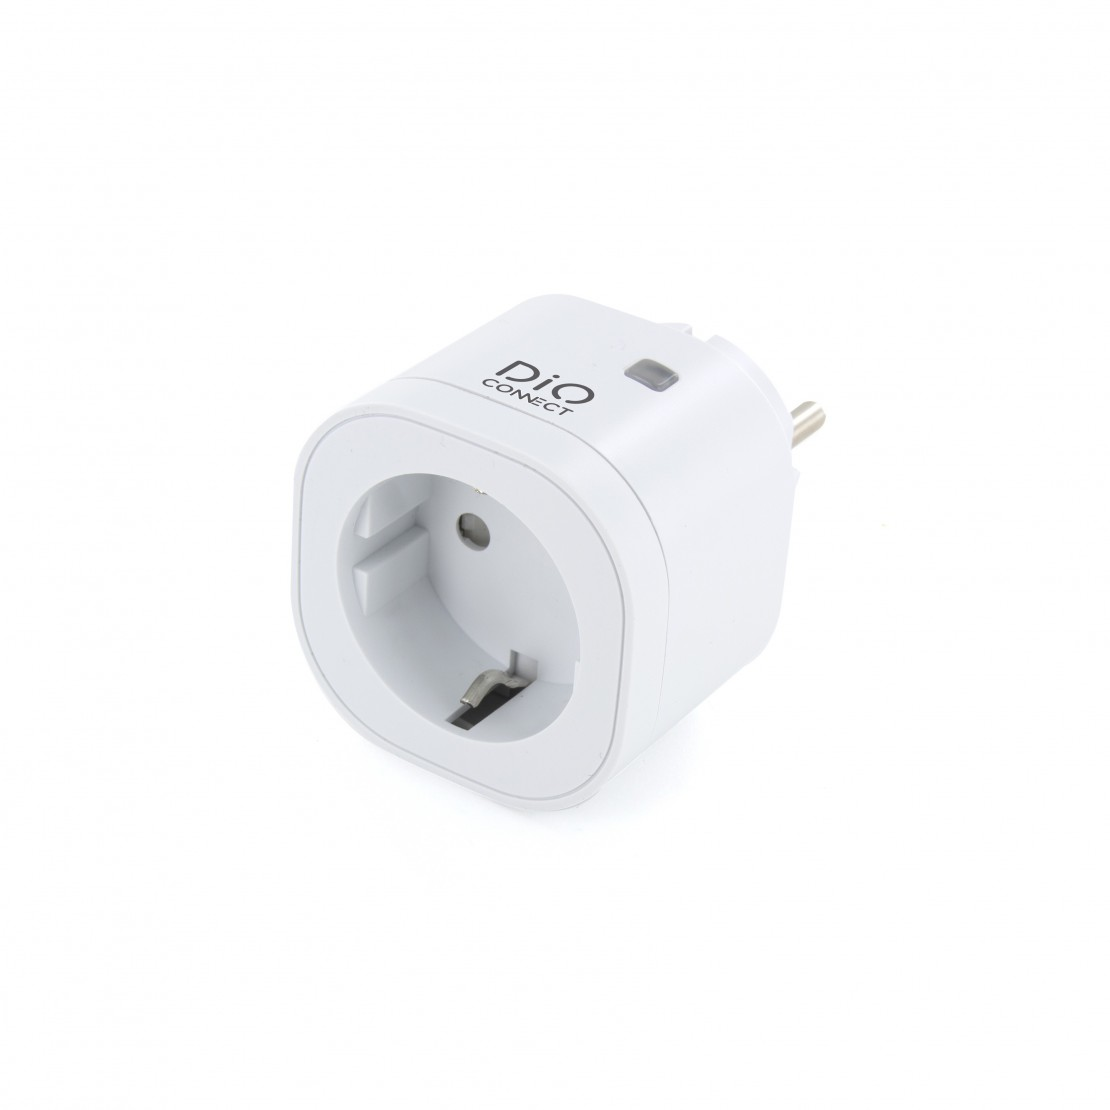 Connected plug - DiO Connect